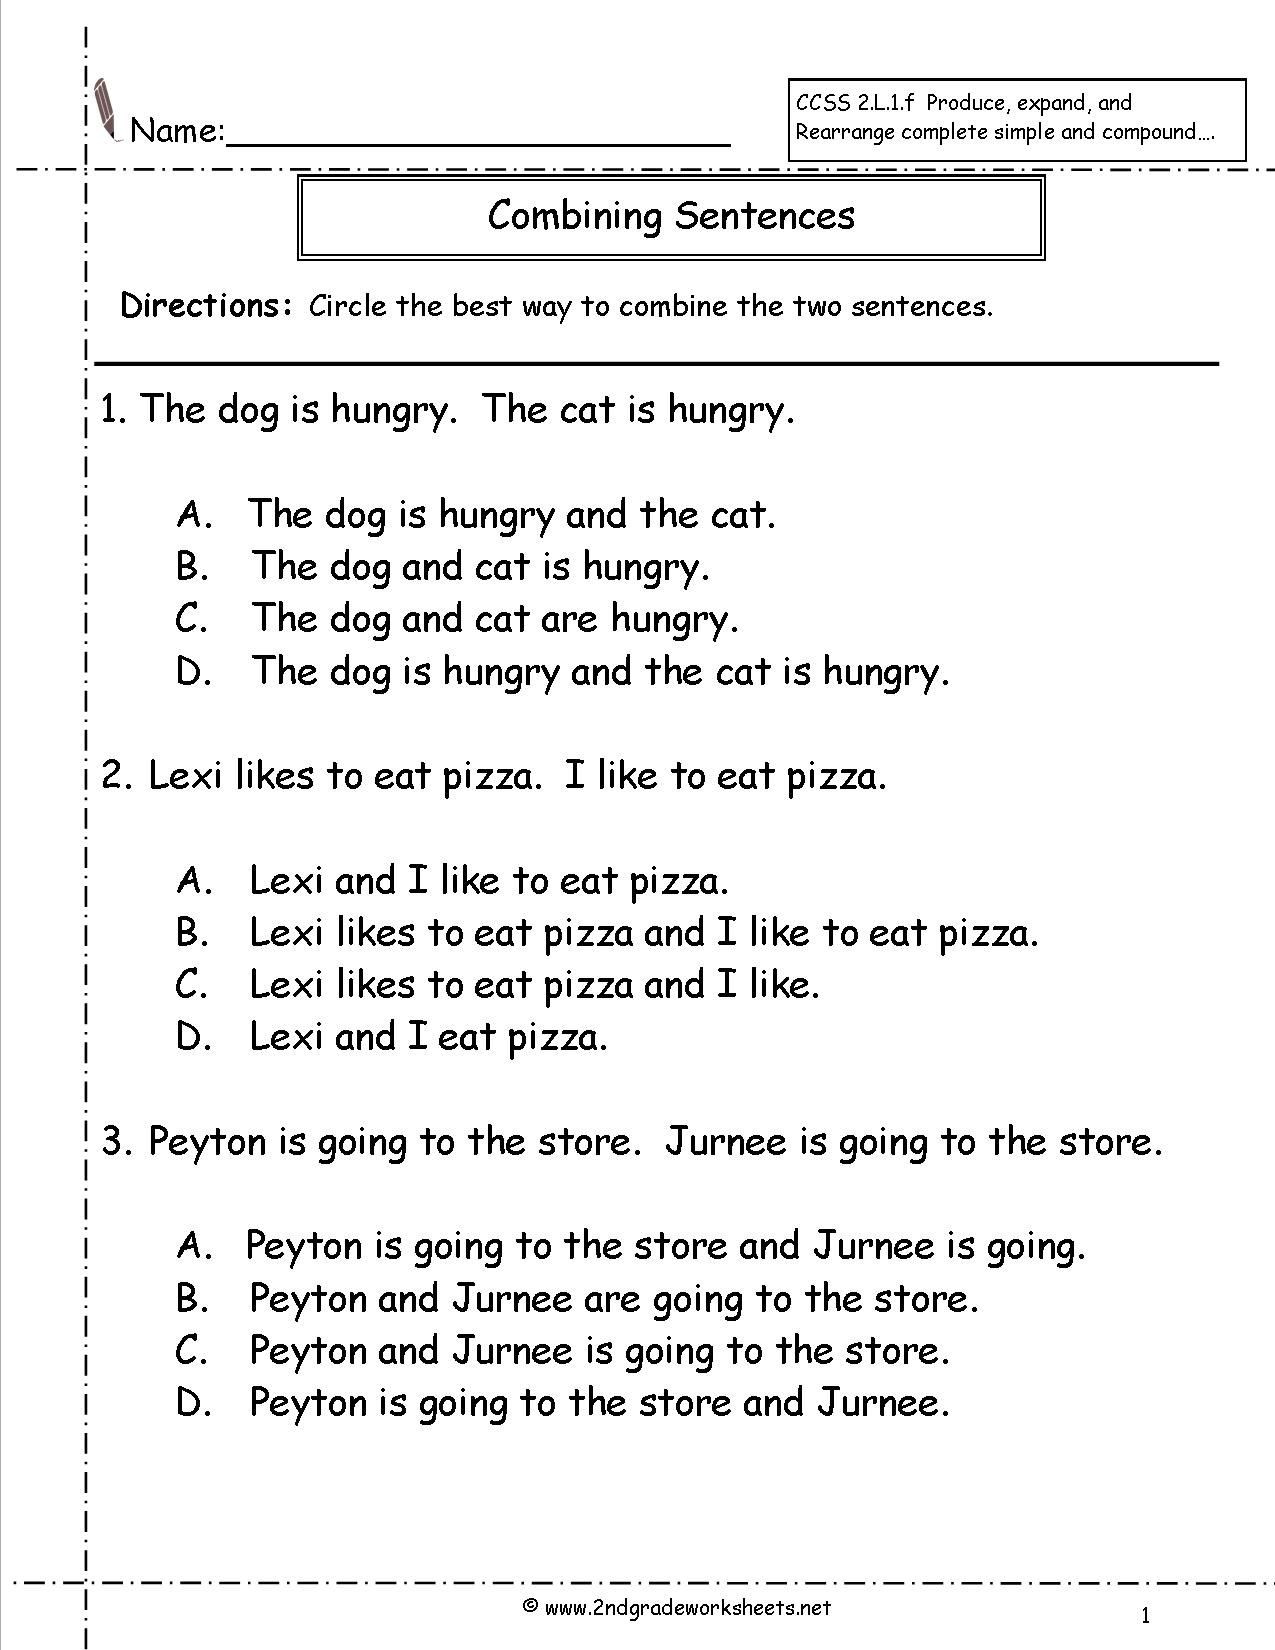 Simple and Compound Sentences Worksheet